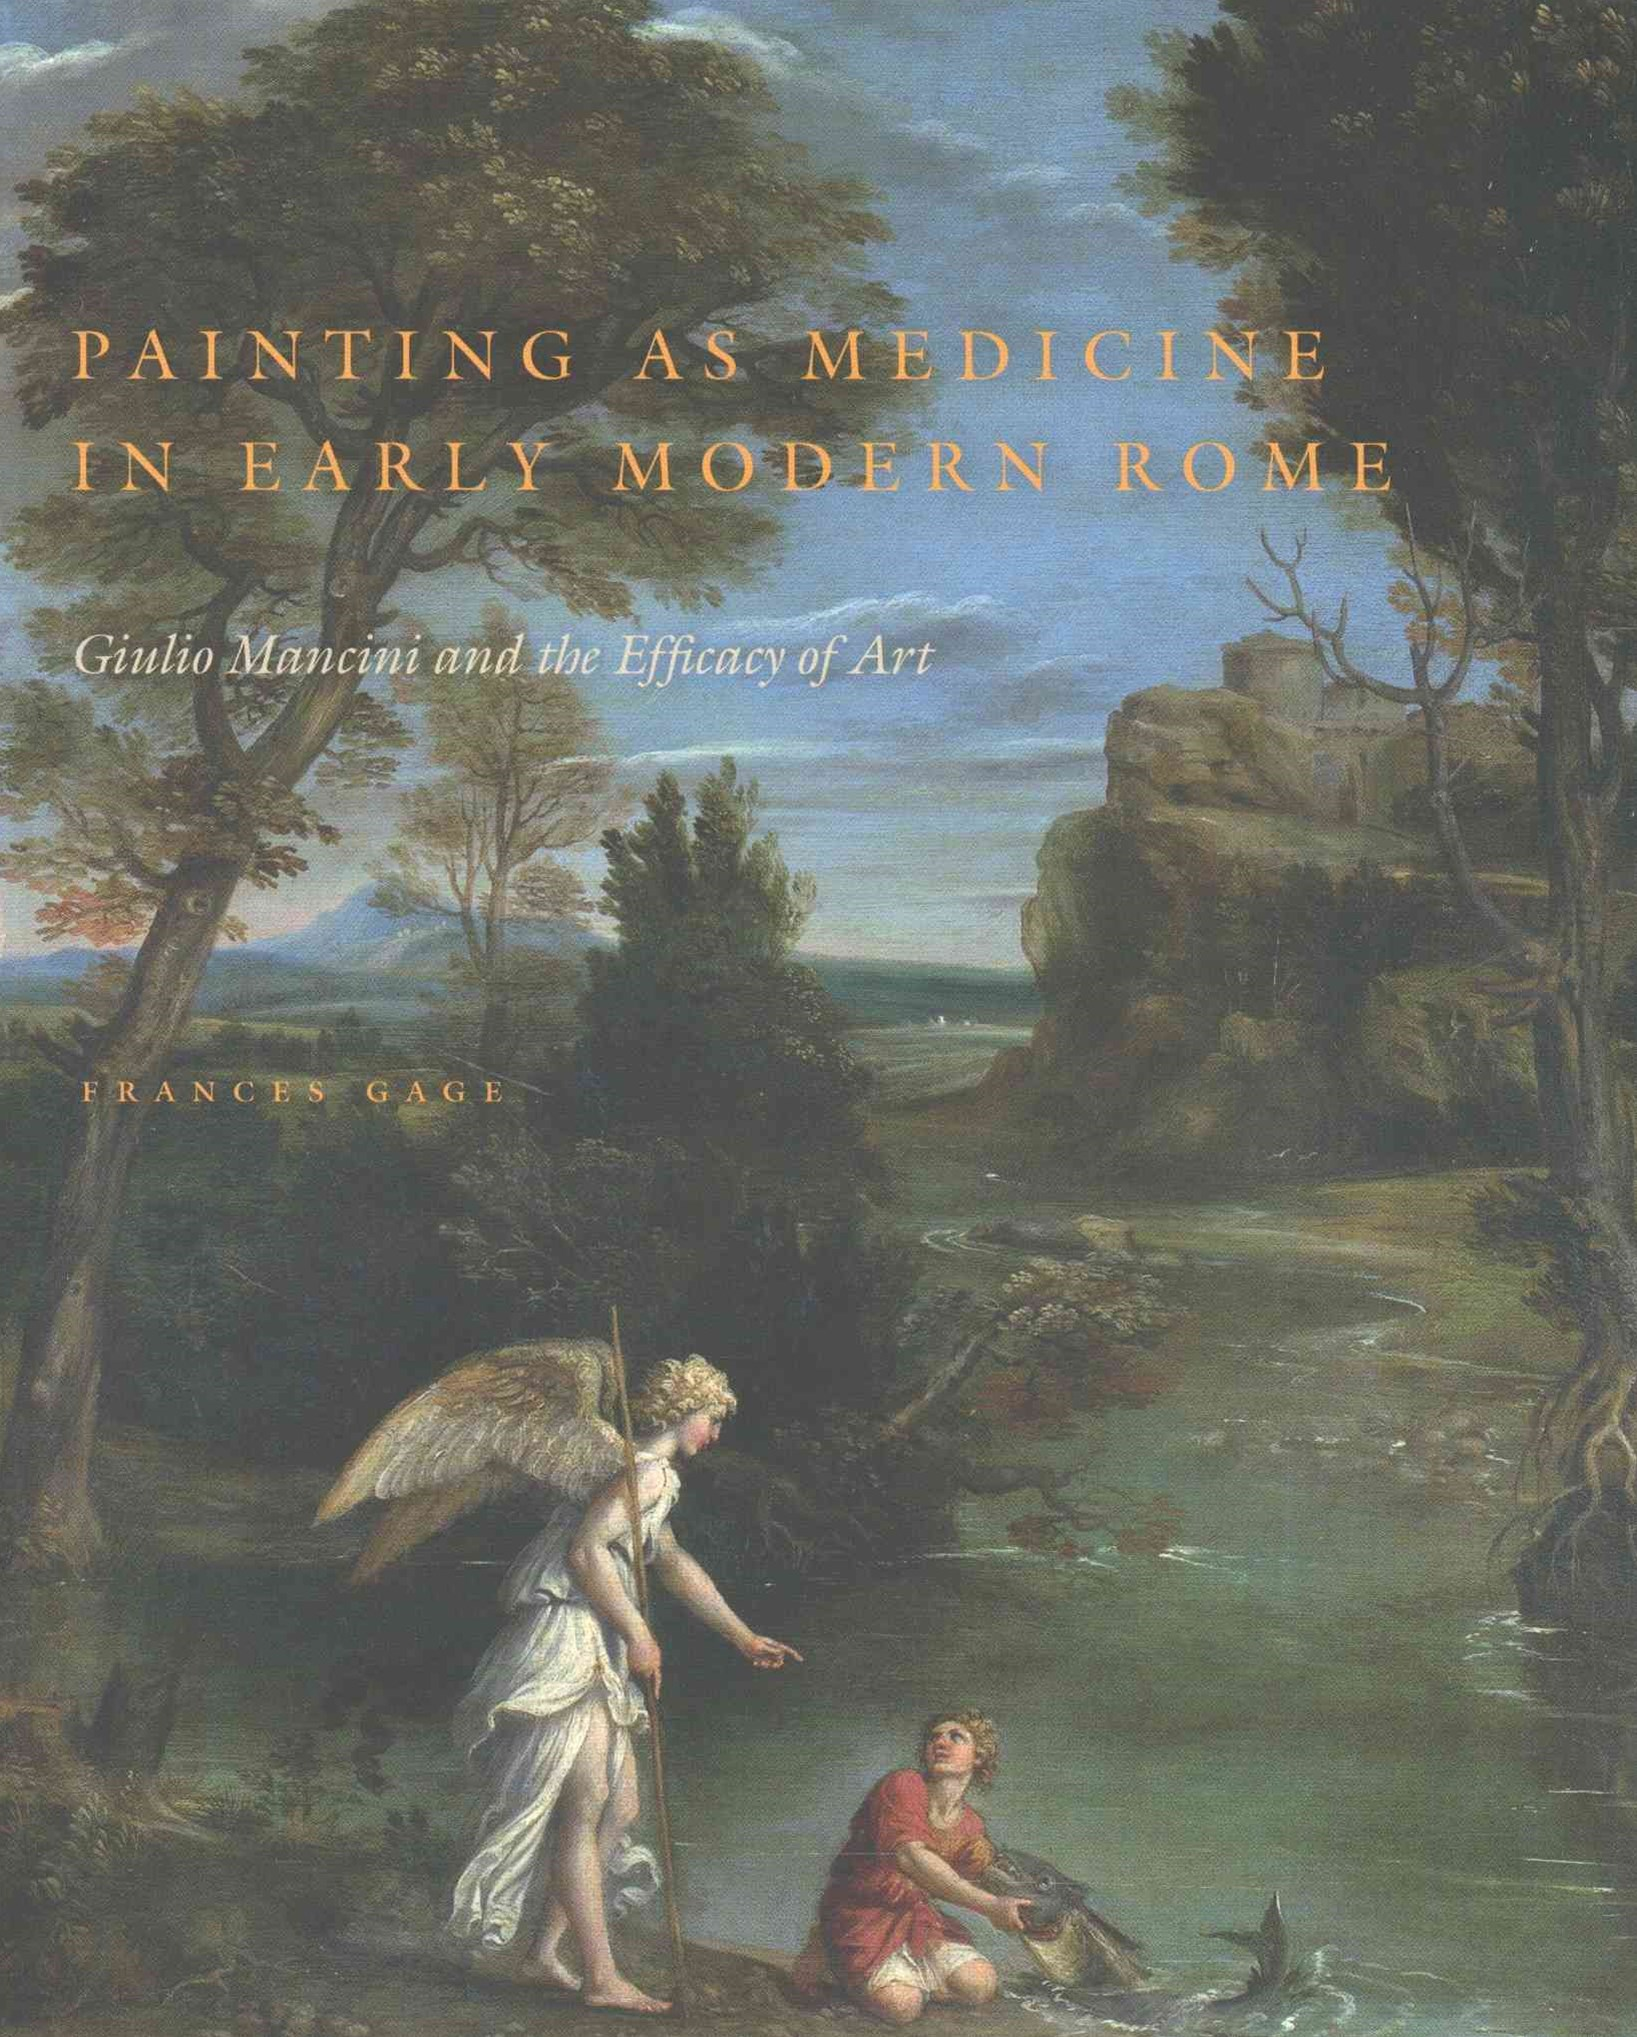 PAINTING MEDICINE EARLY MODERN ROME